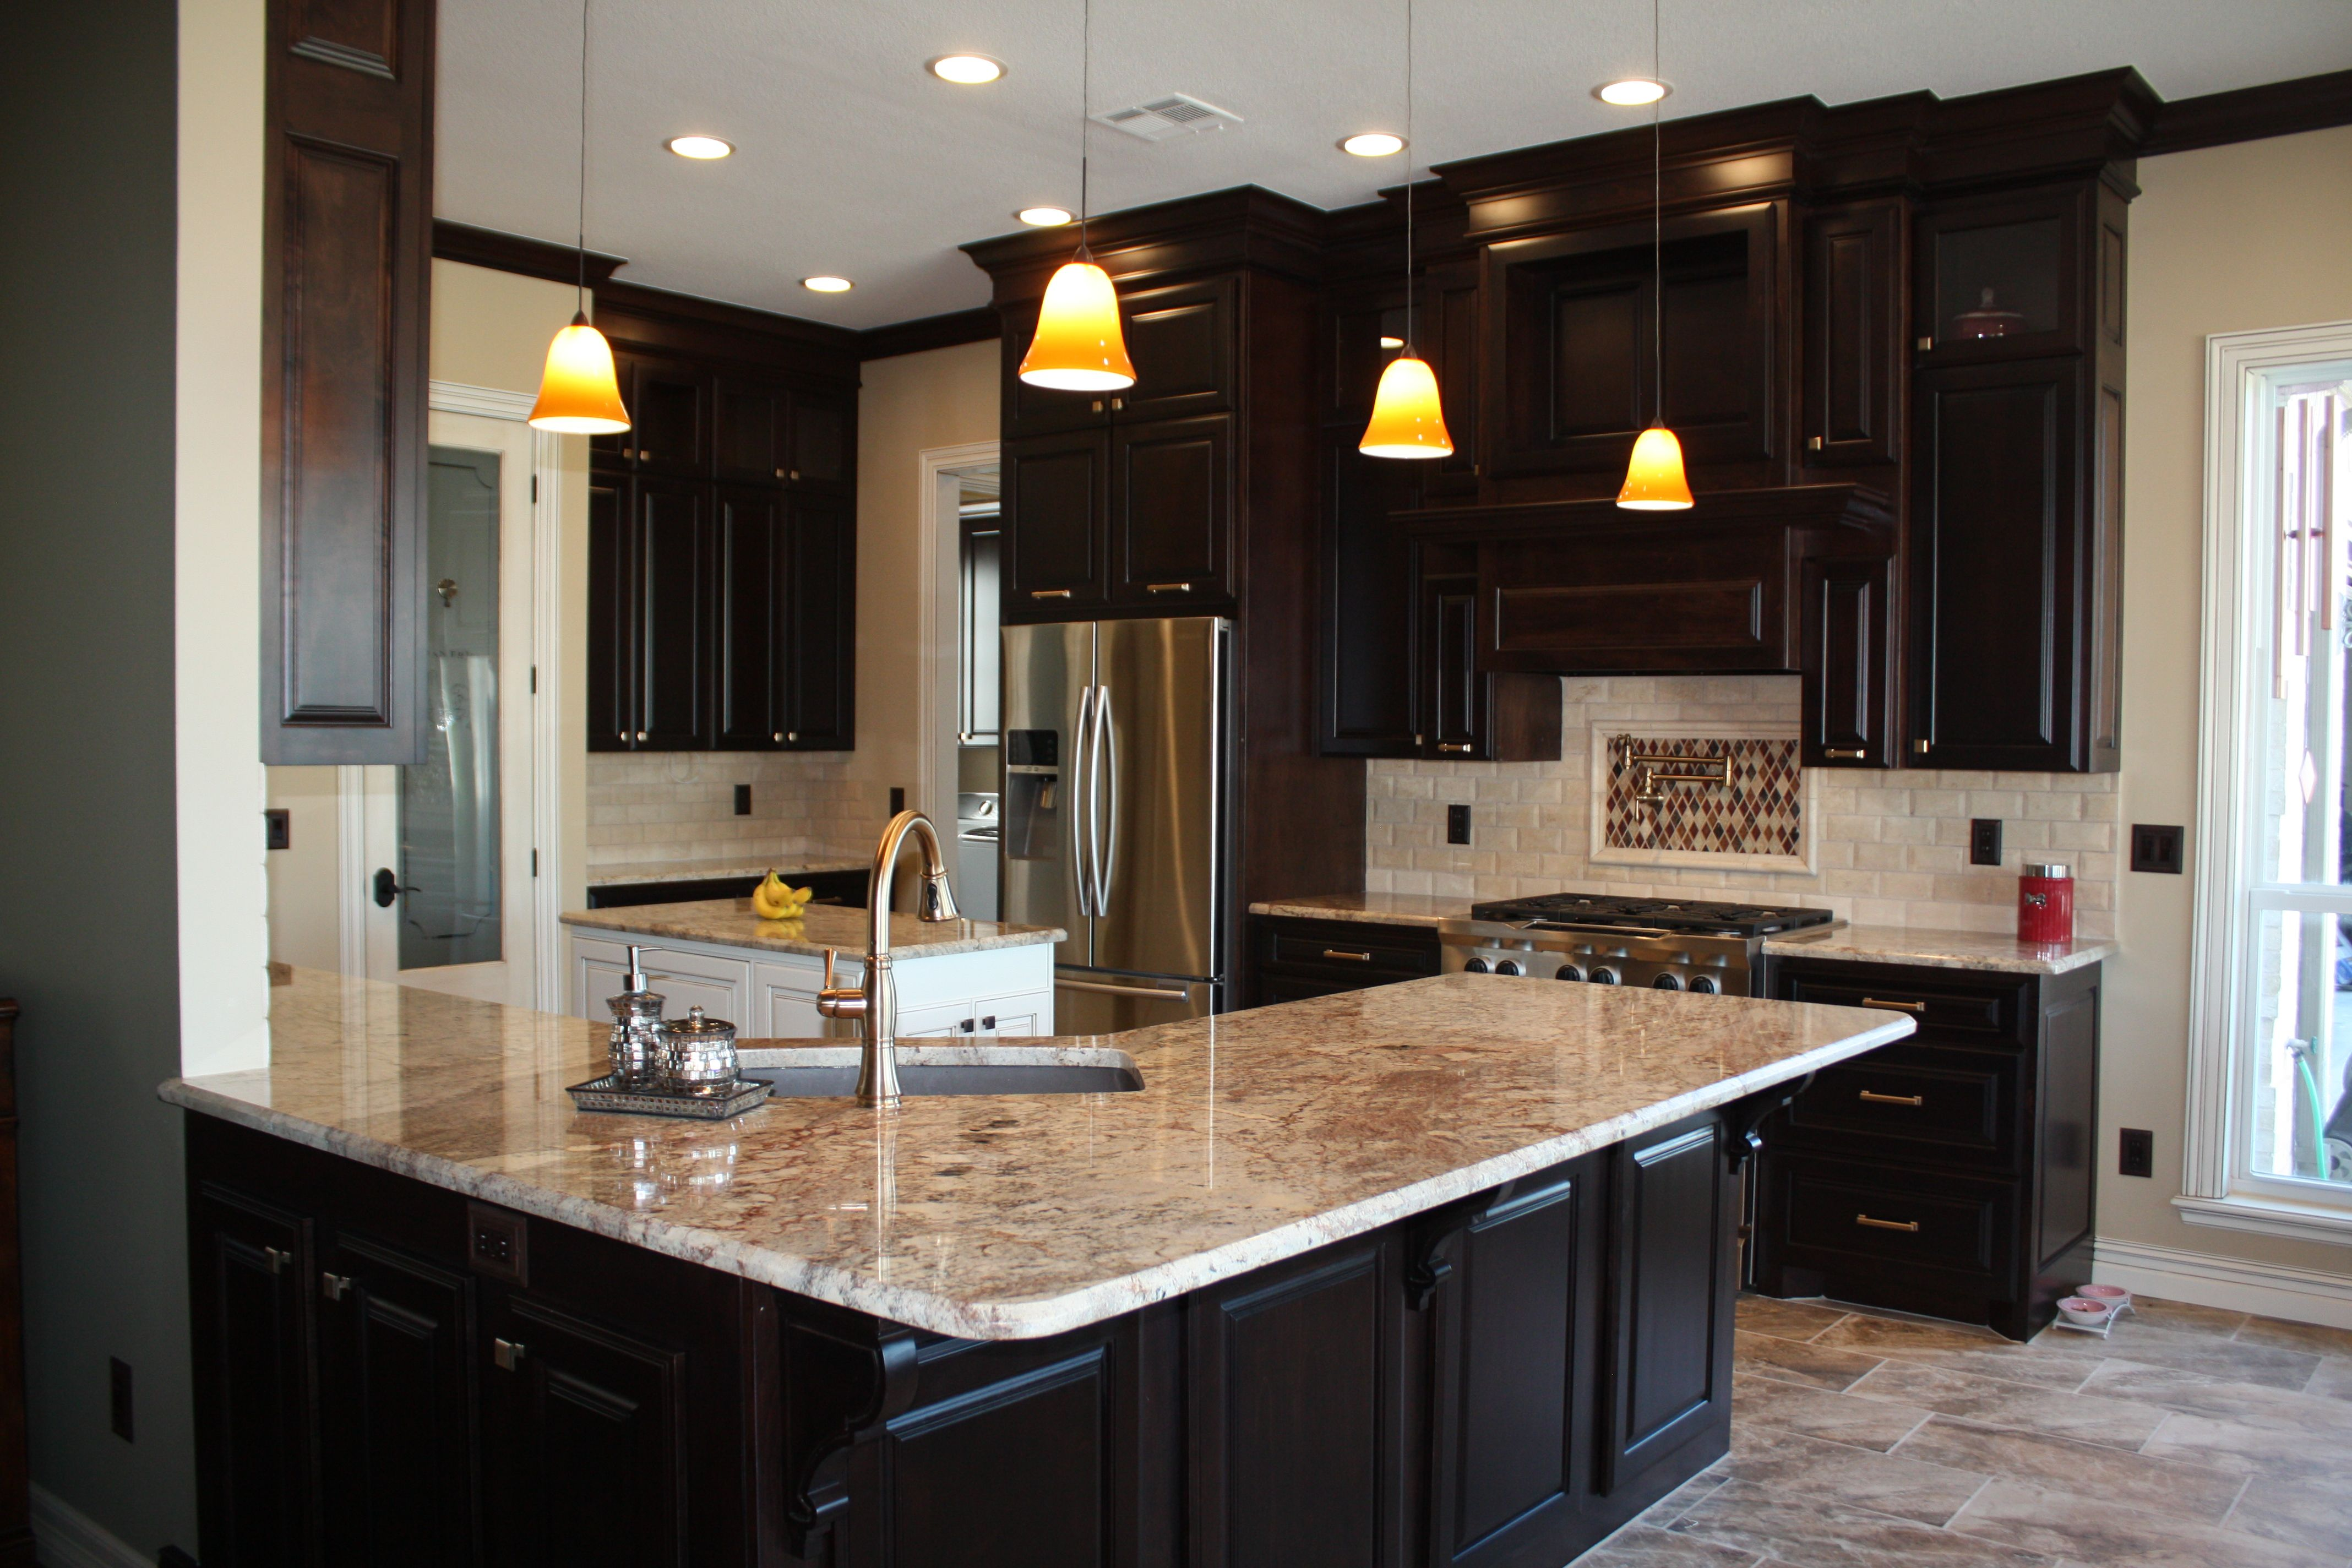 Typhoon Bordeaux Countertop From Our Tulsa Location Kitchen Designed By